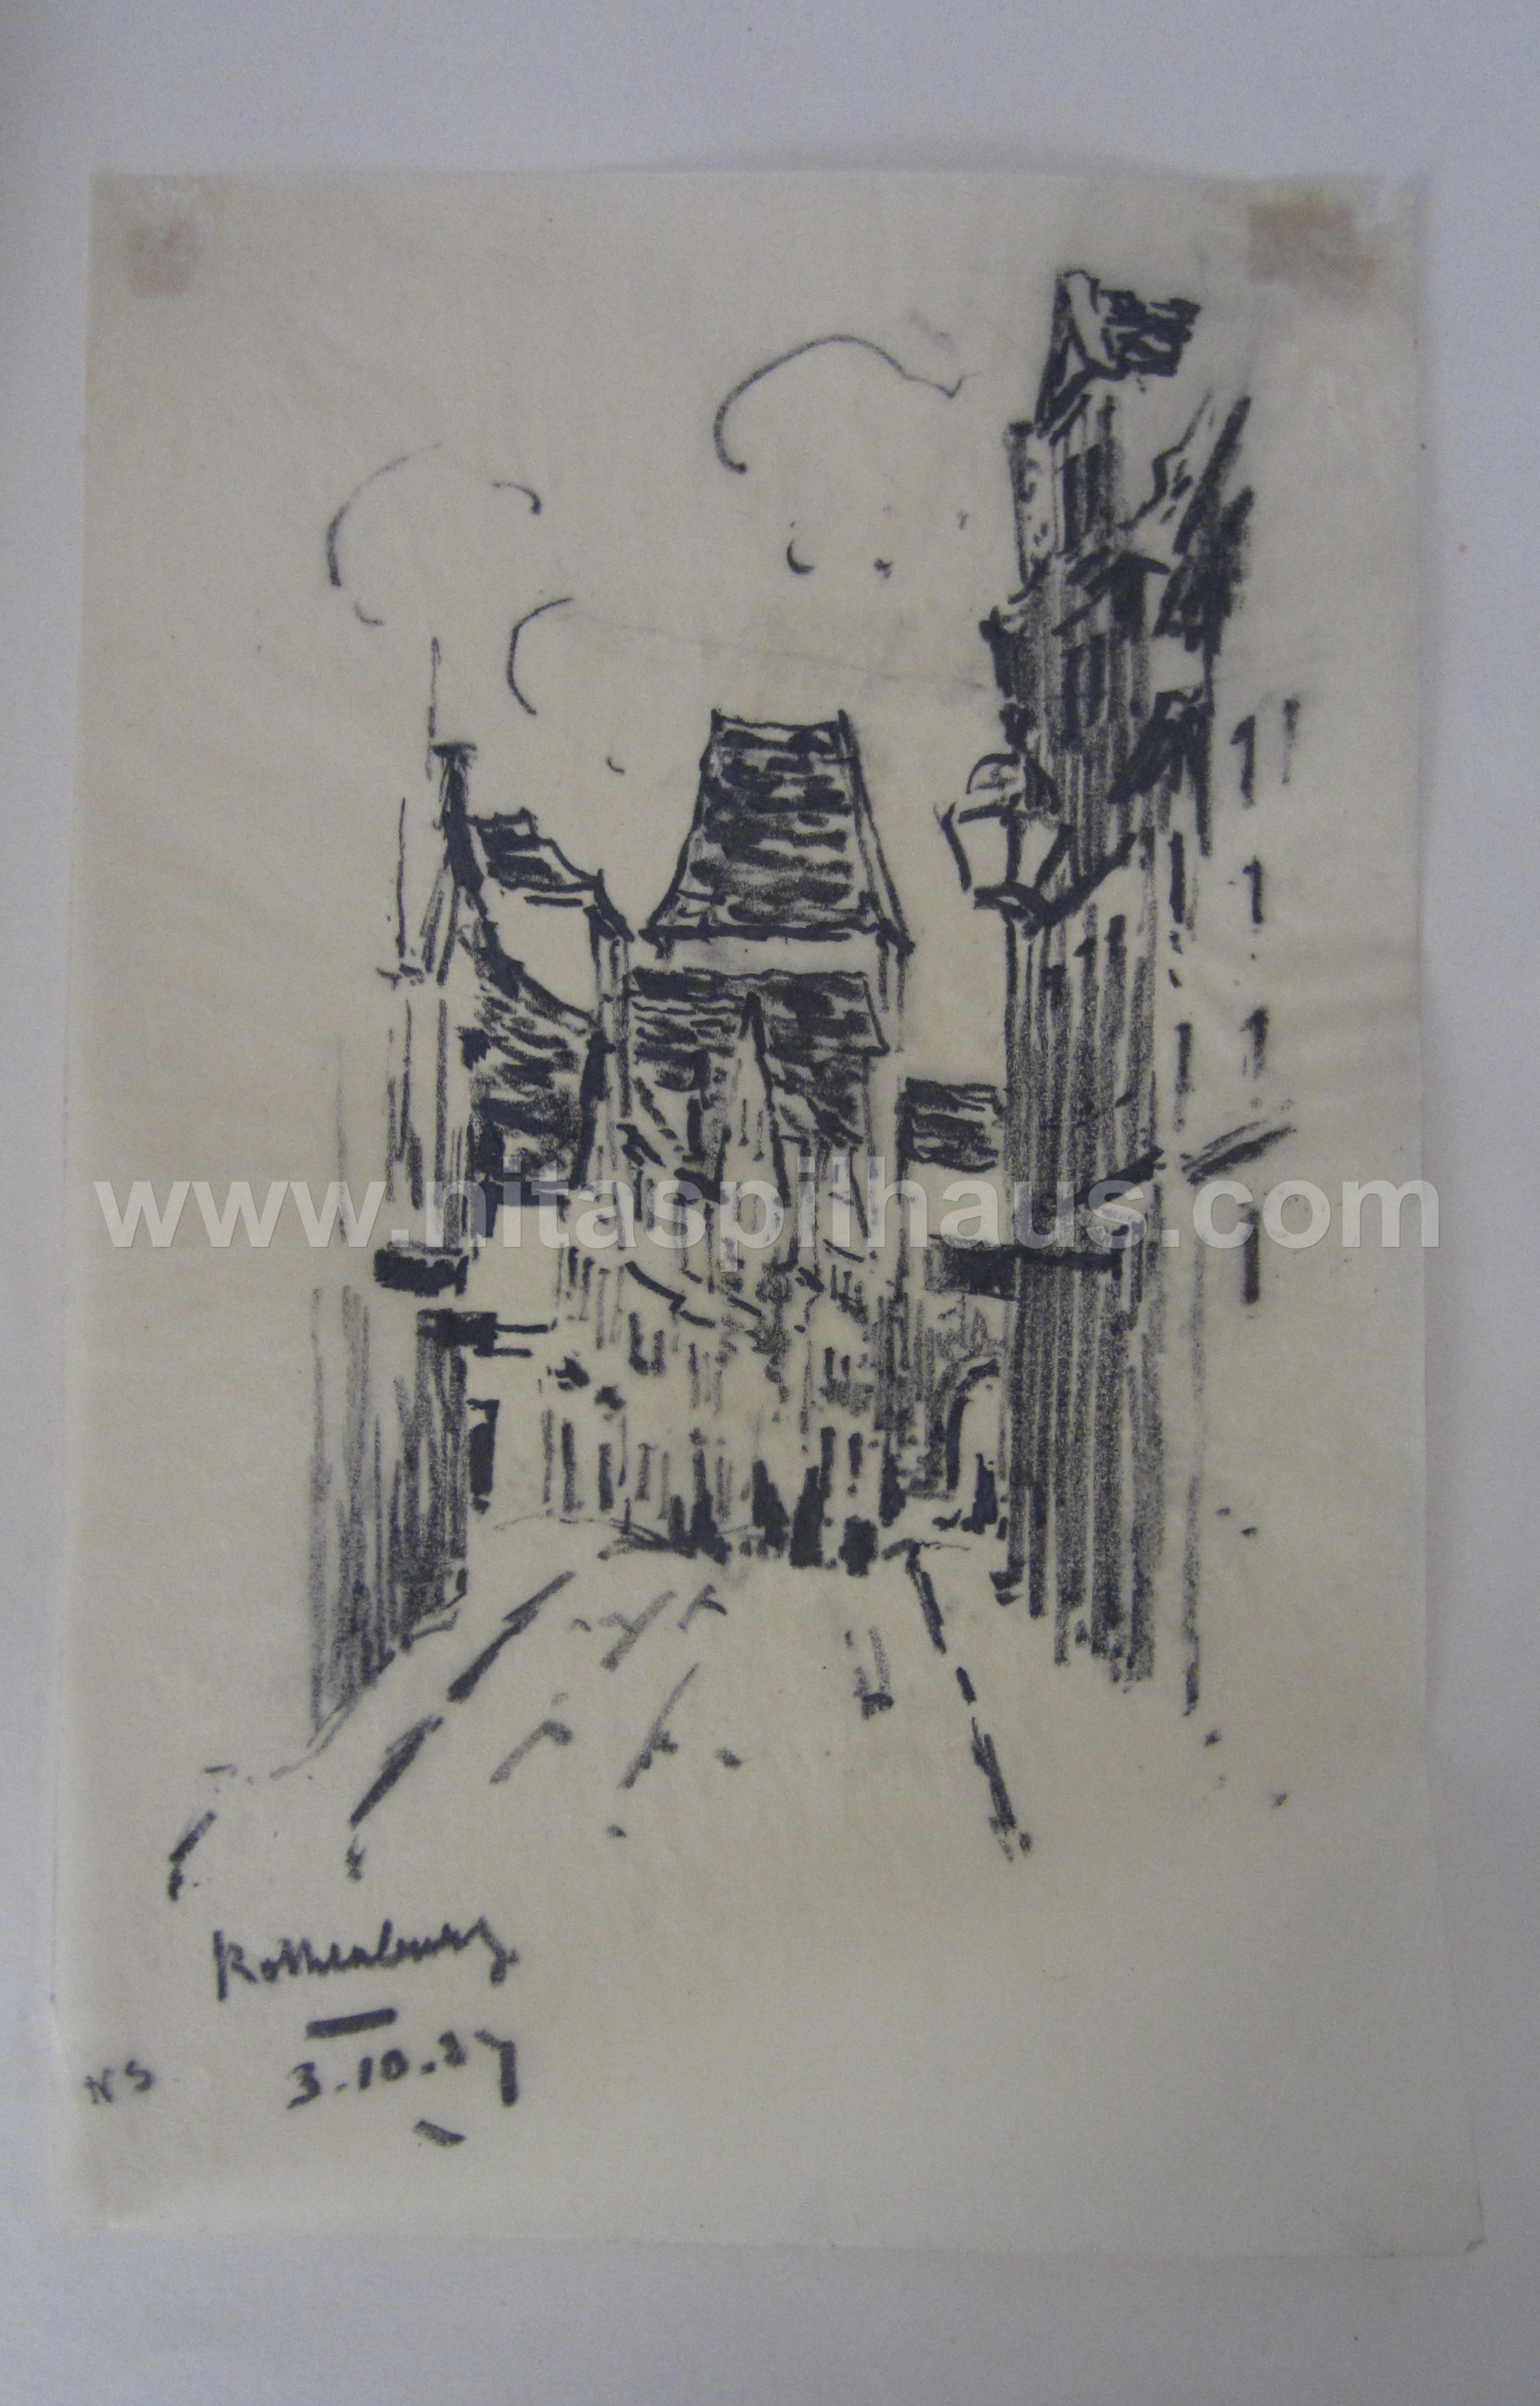 Rothenberg 3.10.27 charcoal on paper 28 x 18 Collector 11